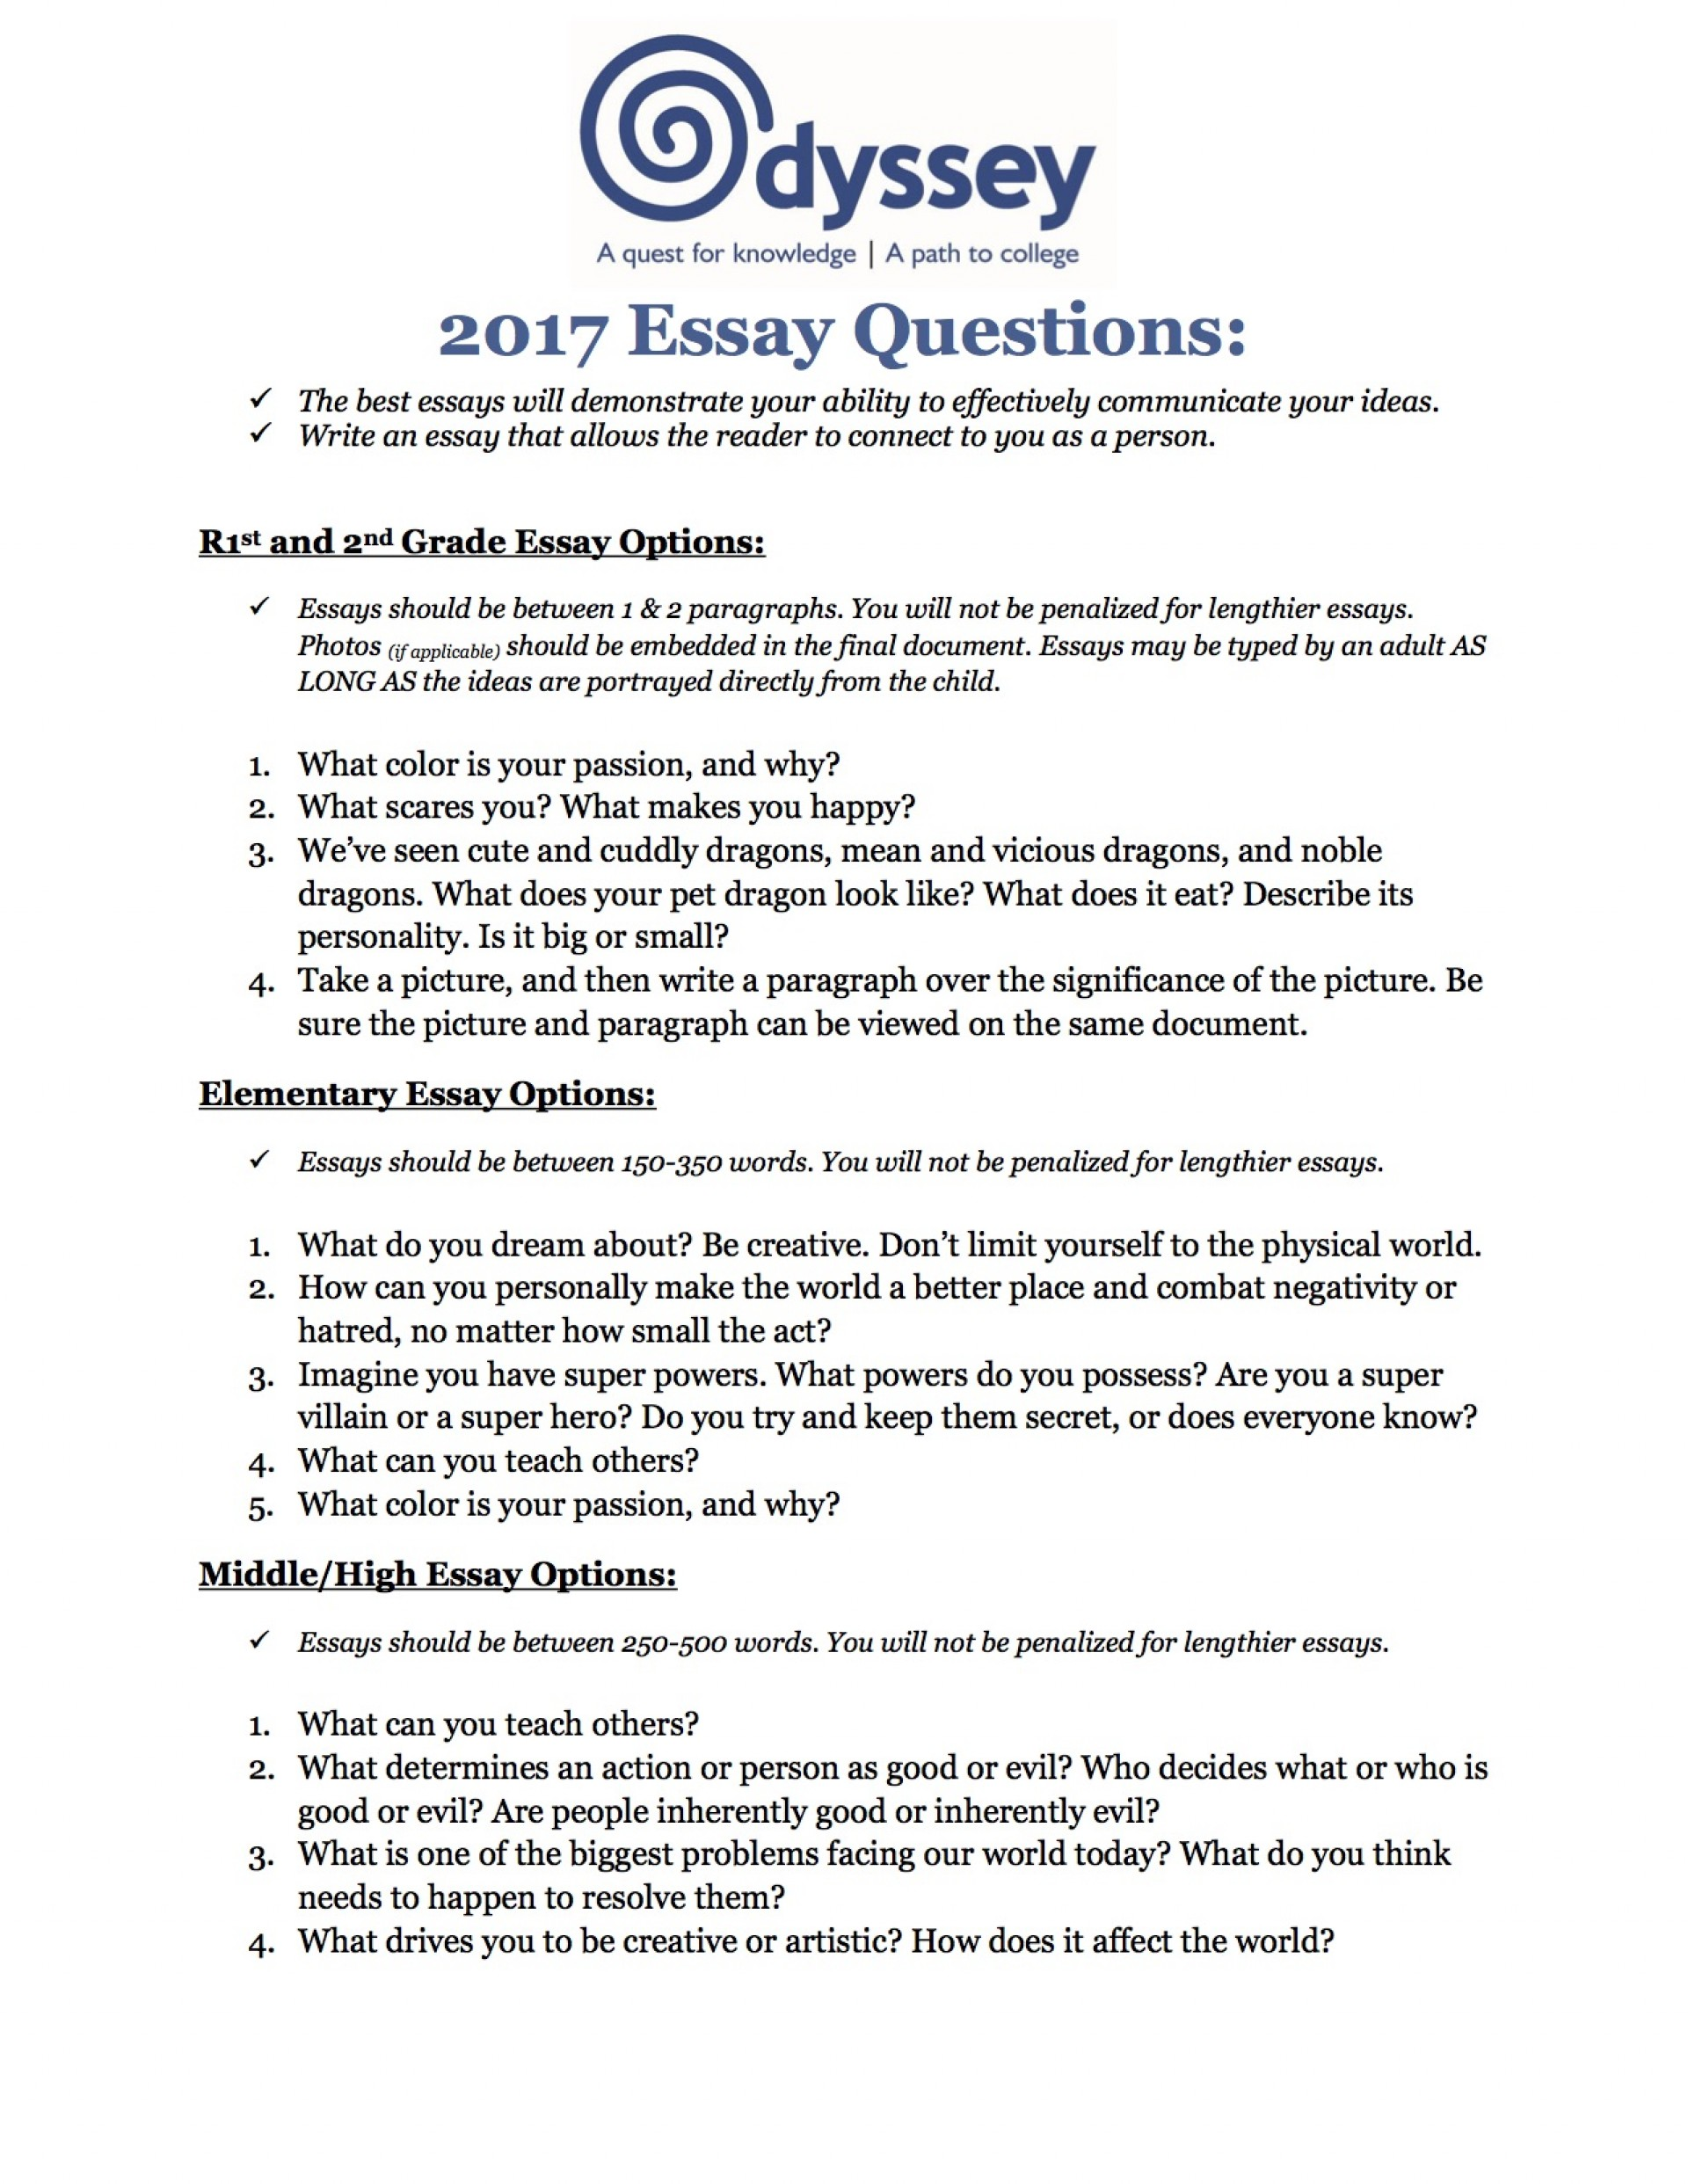 008 Student Essay Example The Odyssey Topics Greek Family How To Good Awesome Template Prompts Bad Examples 1920